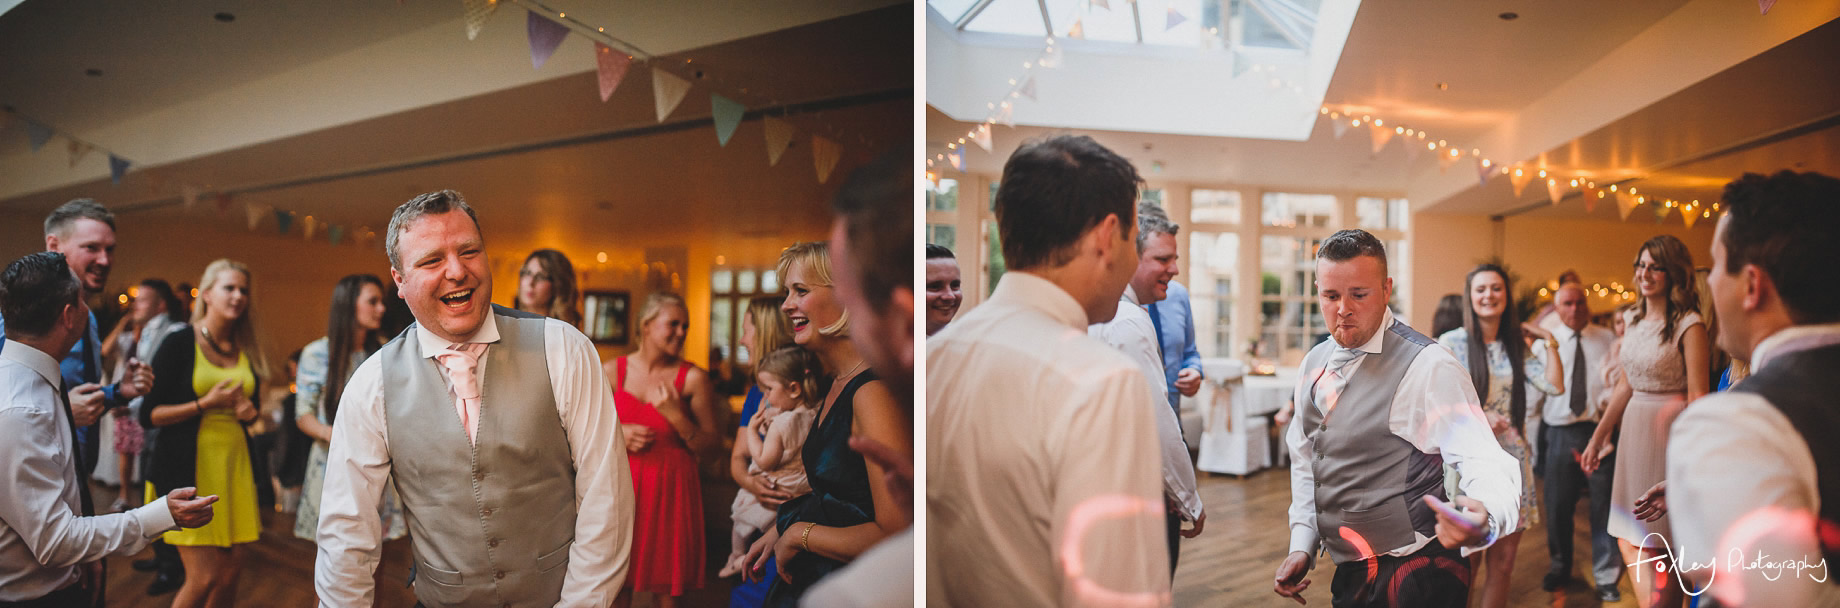 Claire and James' Wedding at Mitton Hall 153